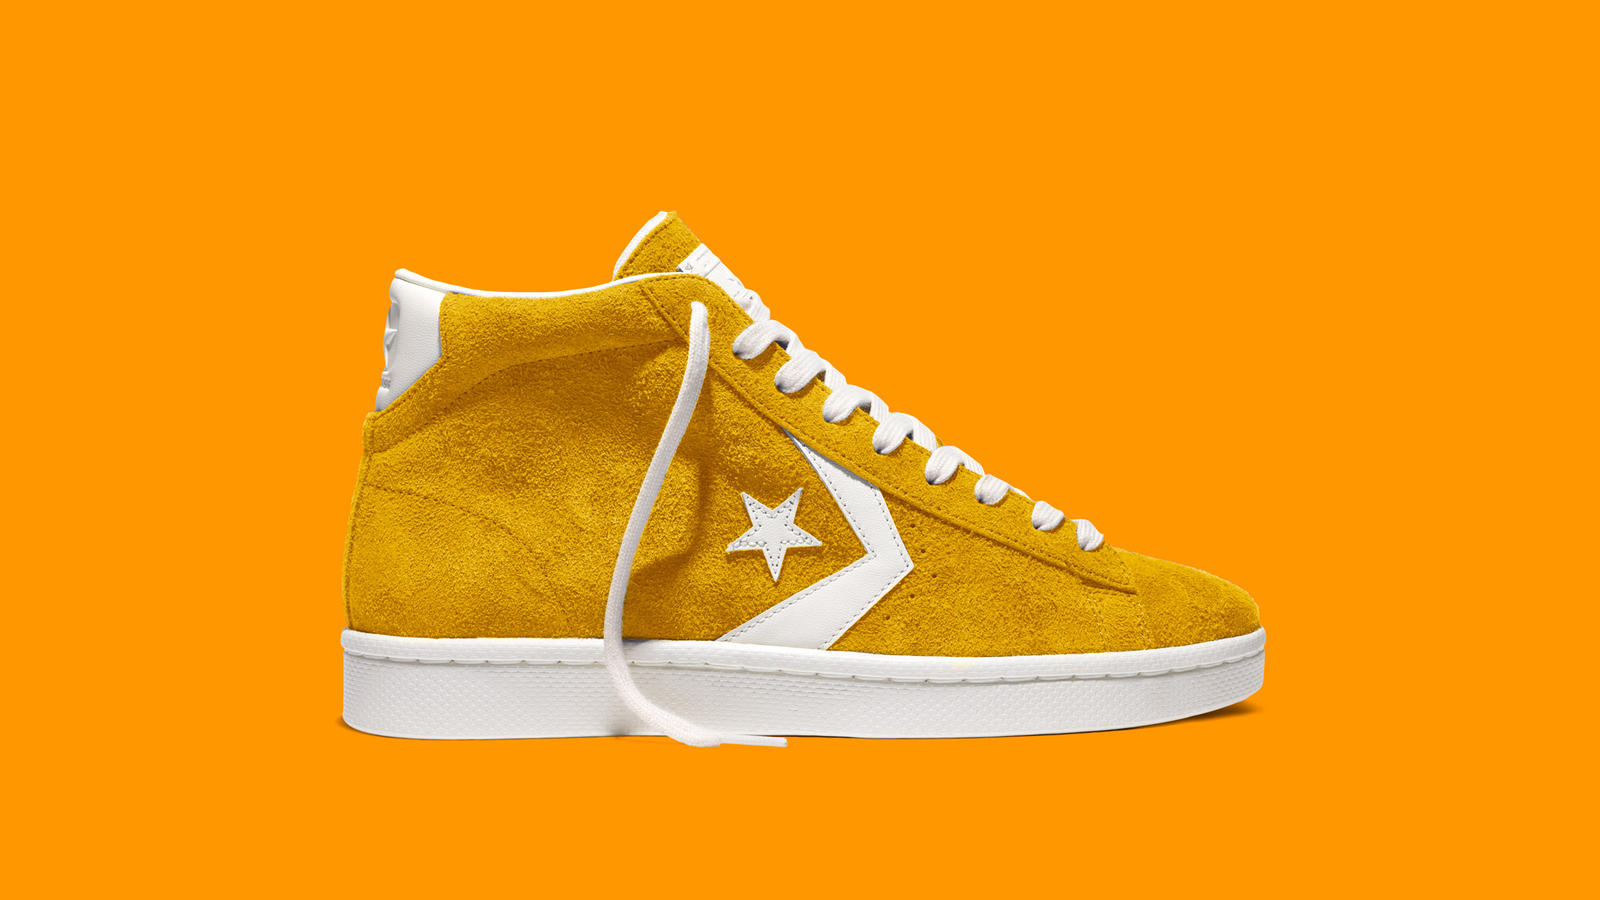 converse shoes pro vintage suede yellow boots